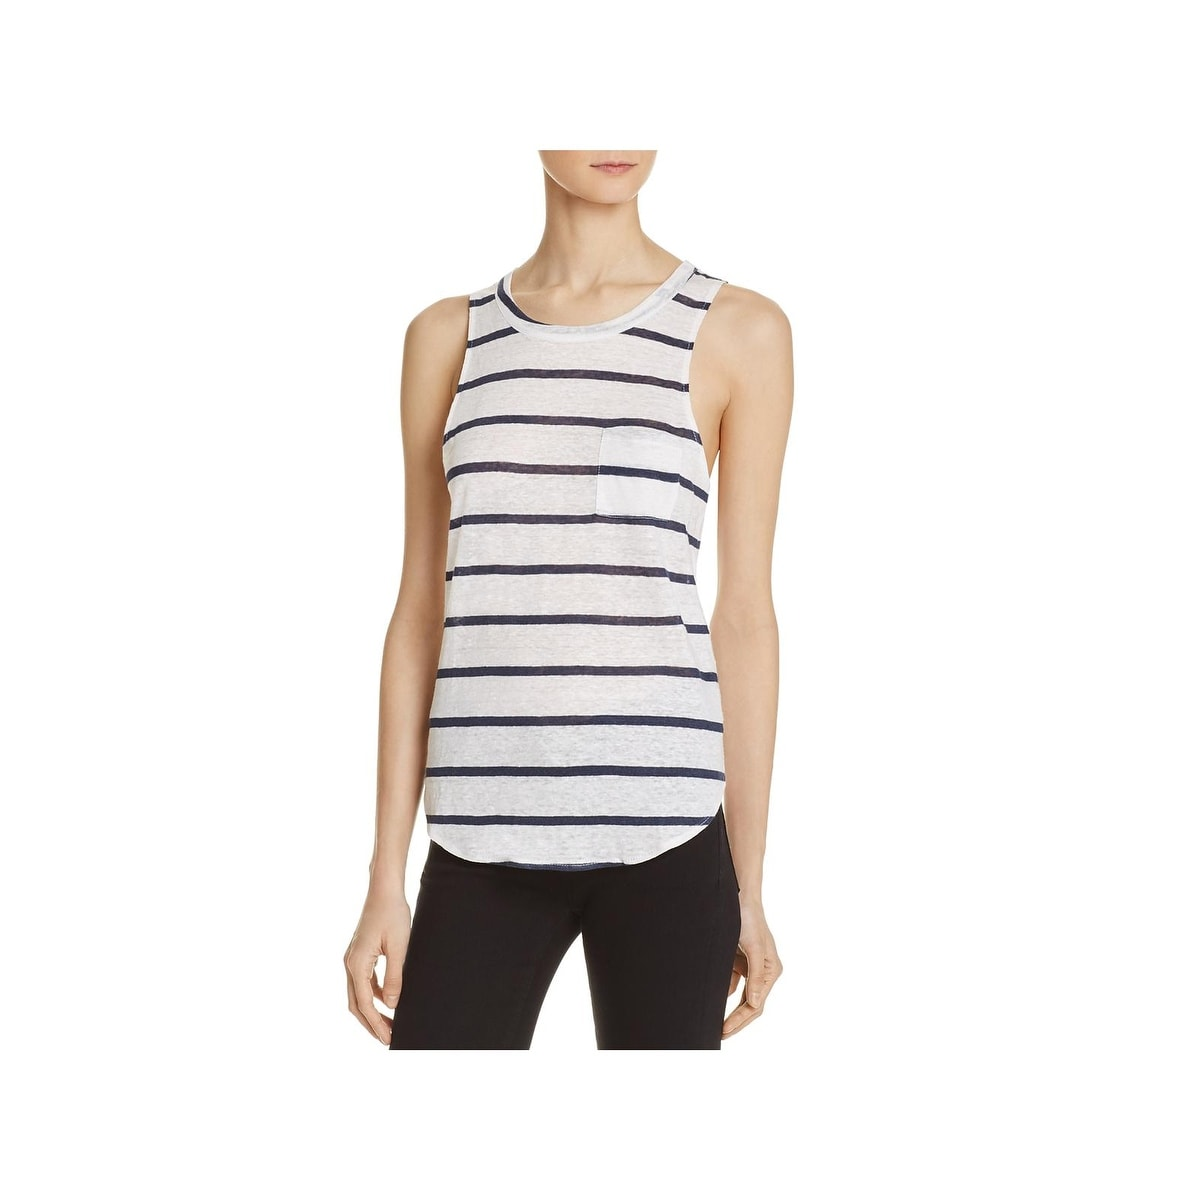 95425bc4b2 Chaser Tops | Find Great Women's Clothing Deals Shopping at Overstock